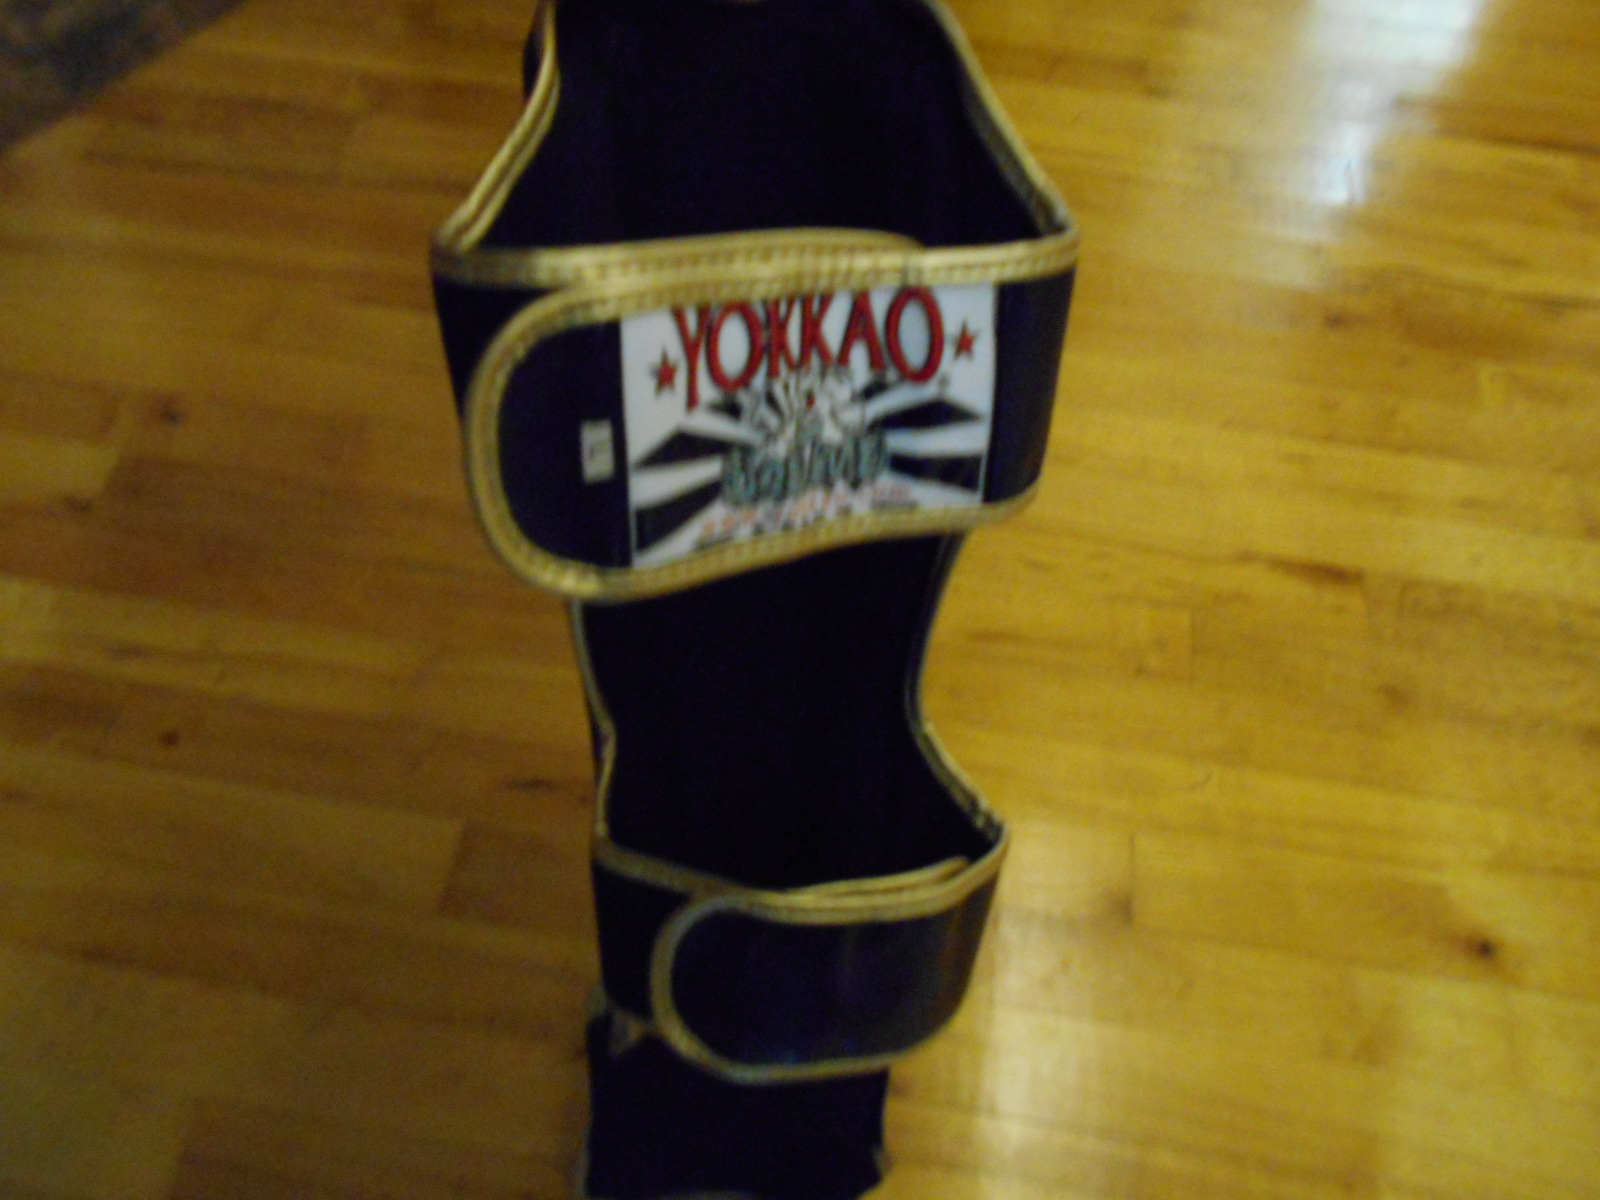 Yokkao black gloves - I Bought A Pair Of Black Large Shin Guards The Shin Guards Are Very Firm And Sturdy They Have Two Velcro Straps That Are Large Enough To Fit Just About